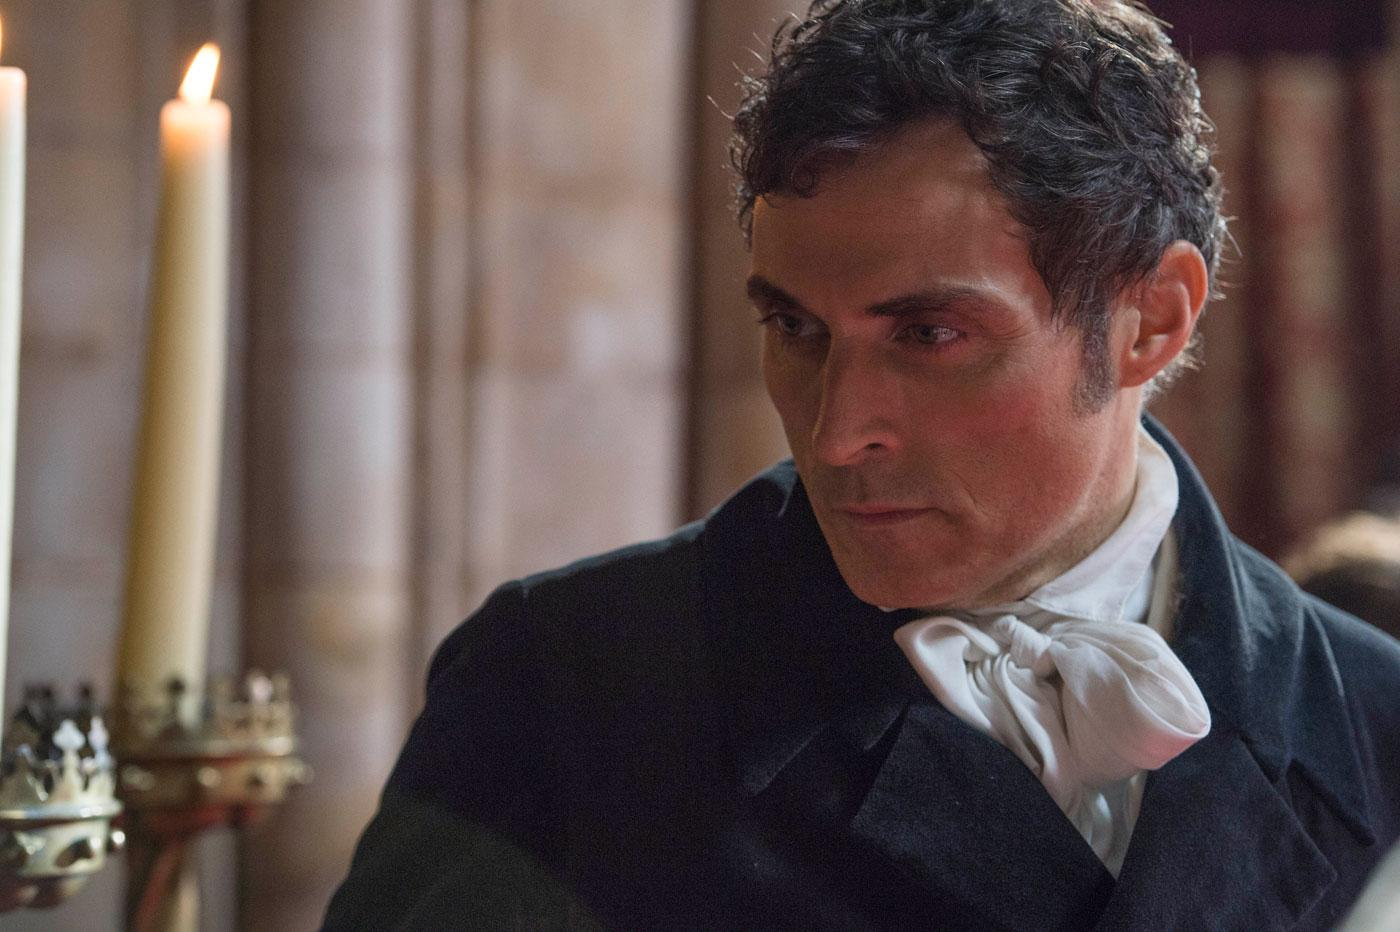 Victoria wants Lord Melbourne to be more than just a mentor. (ITV Plc)